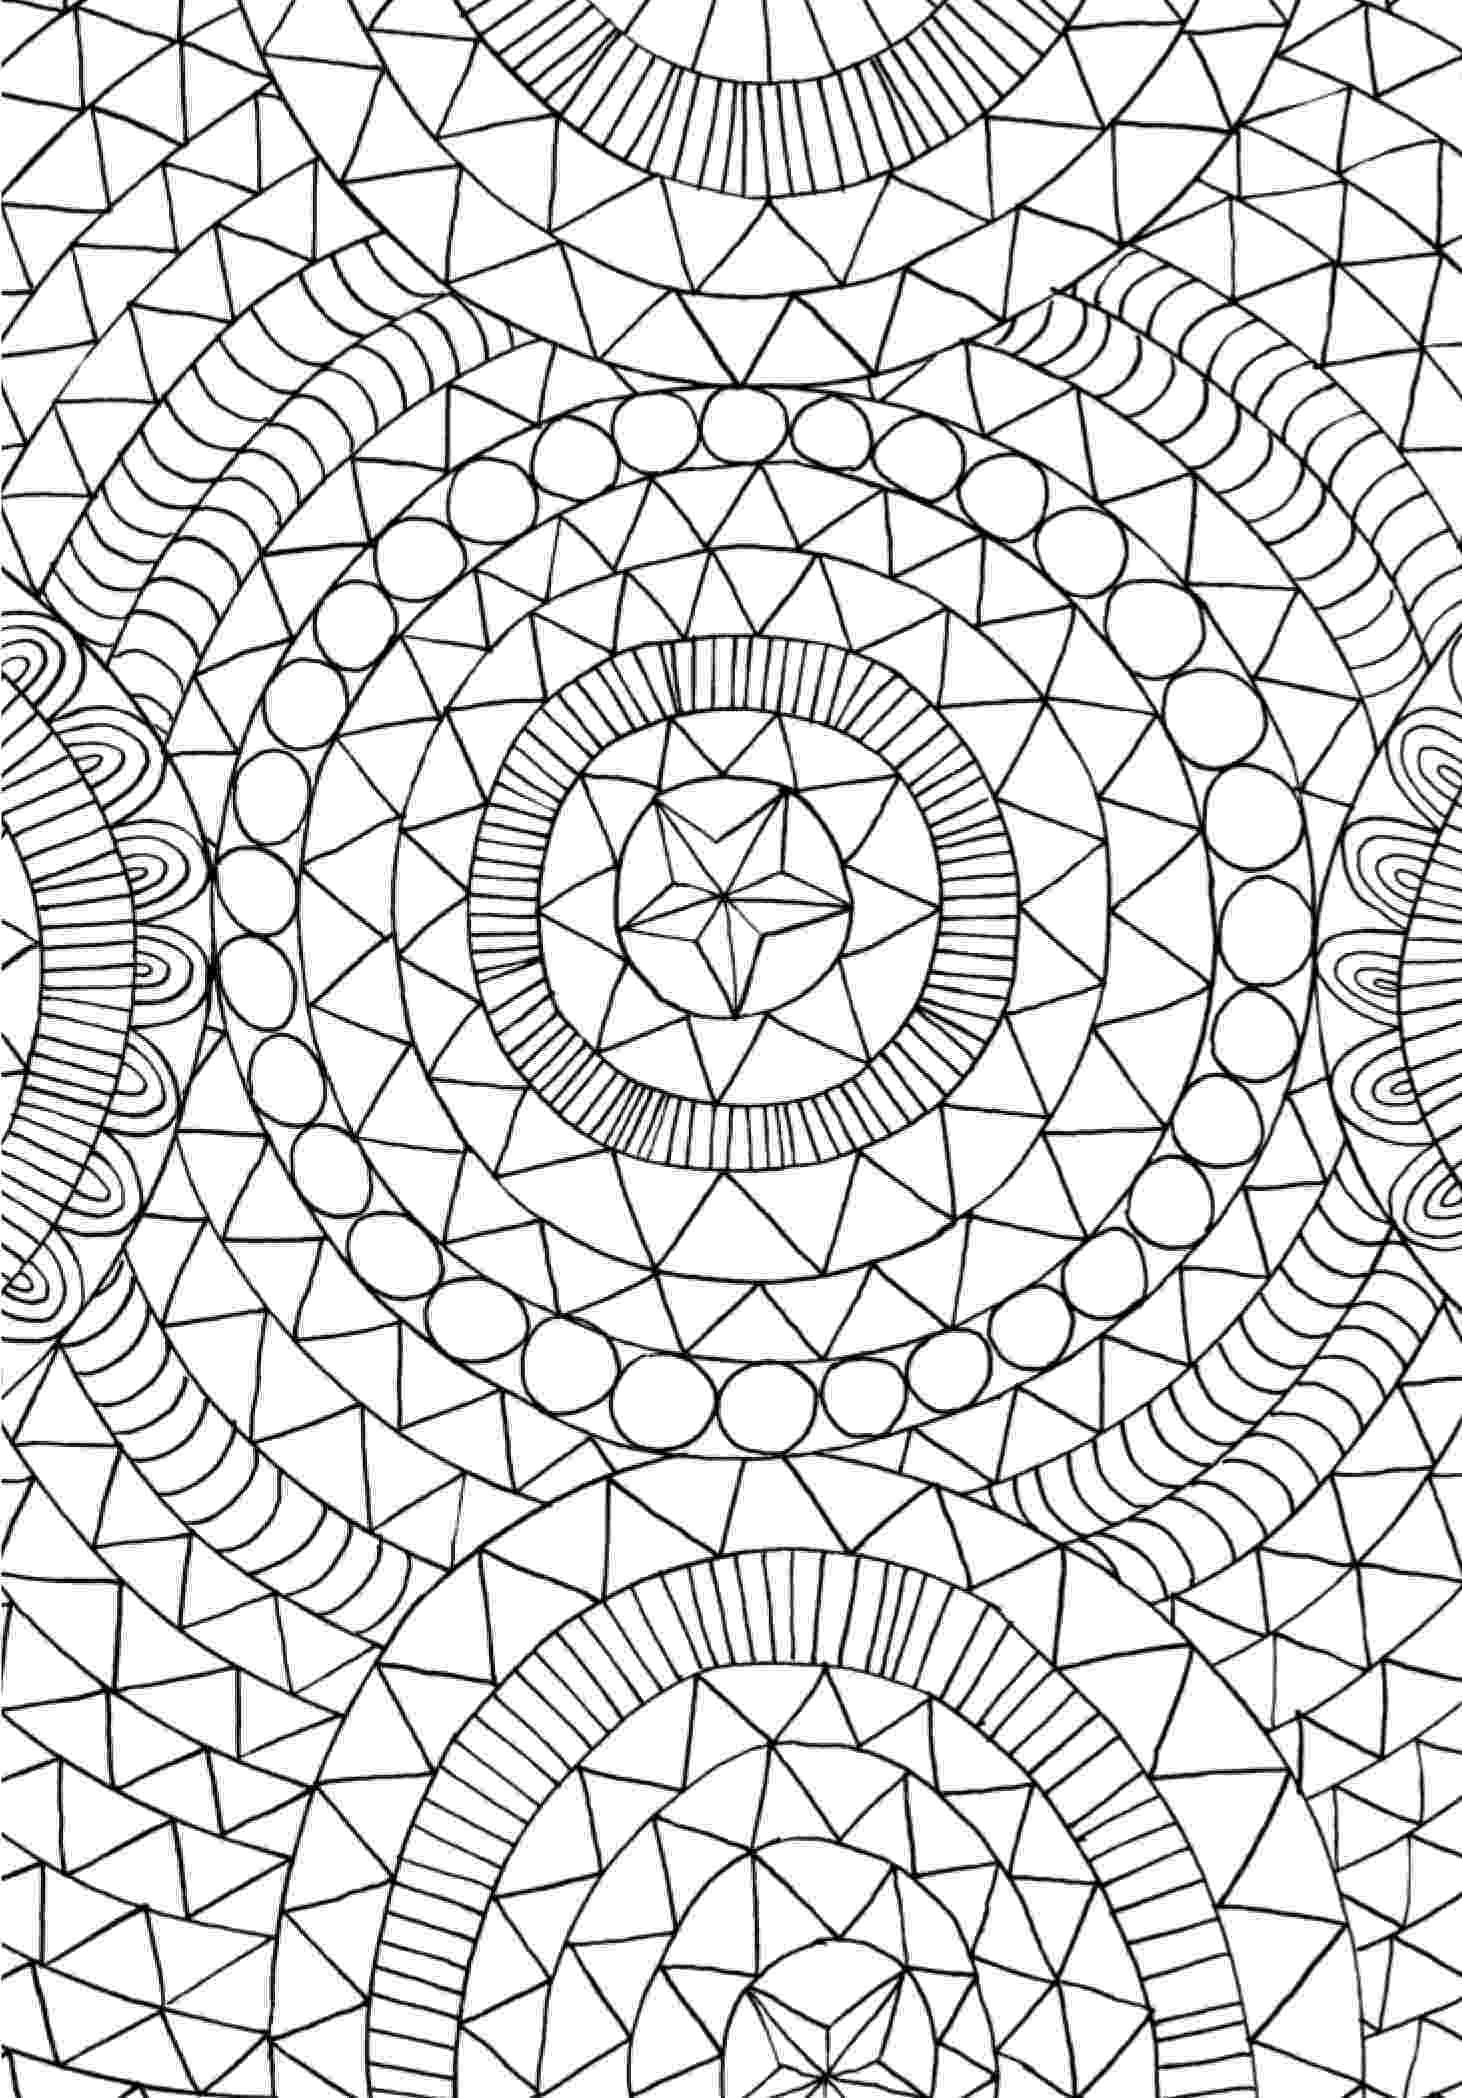 mindfulness colouring pages mindfulness coloring pages best coloring pages for kids mindfulness pages colouring